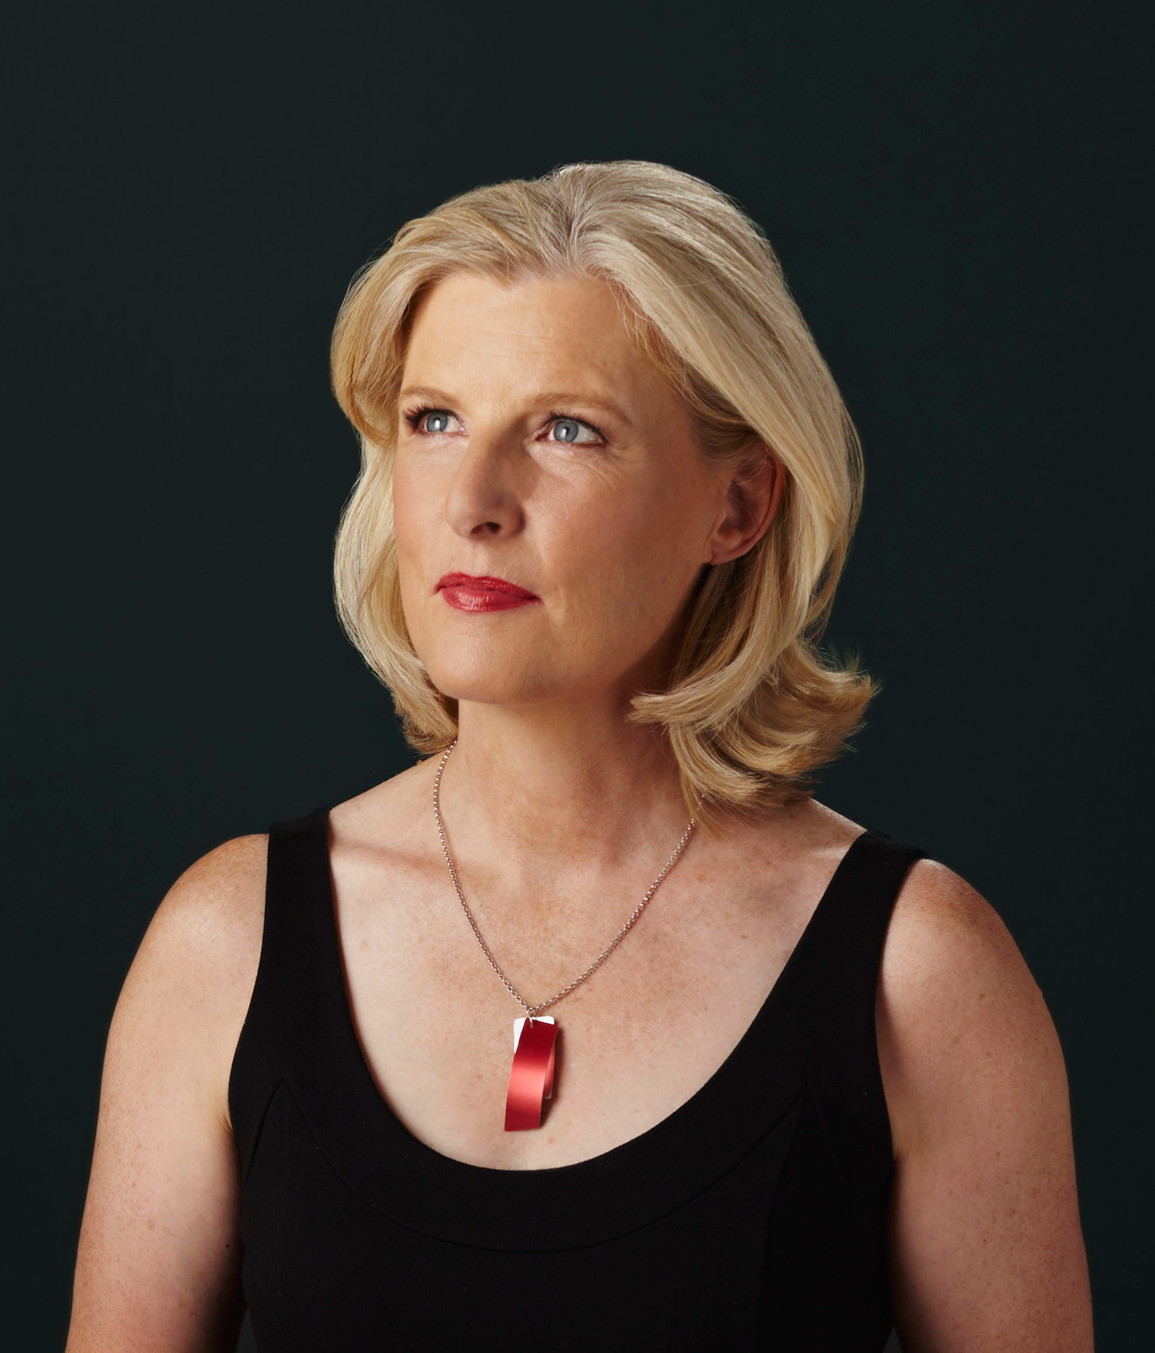 Portrait of Gillian Findlay of CBC, Corporate portrait by GiantVision Photography